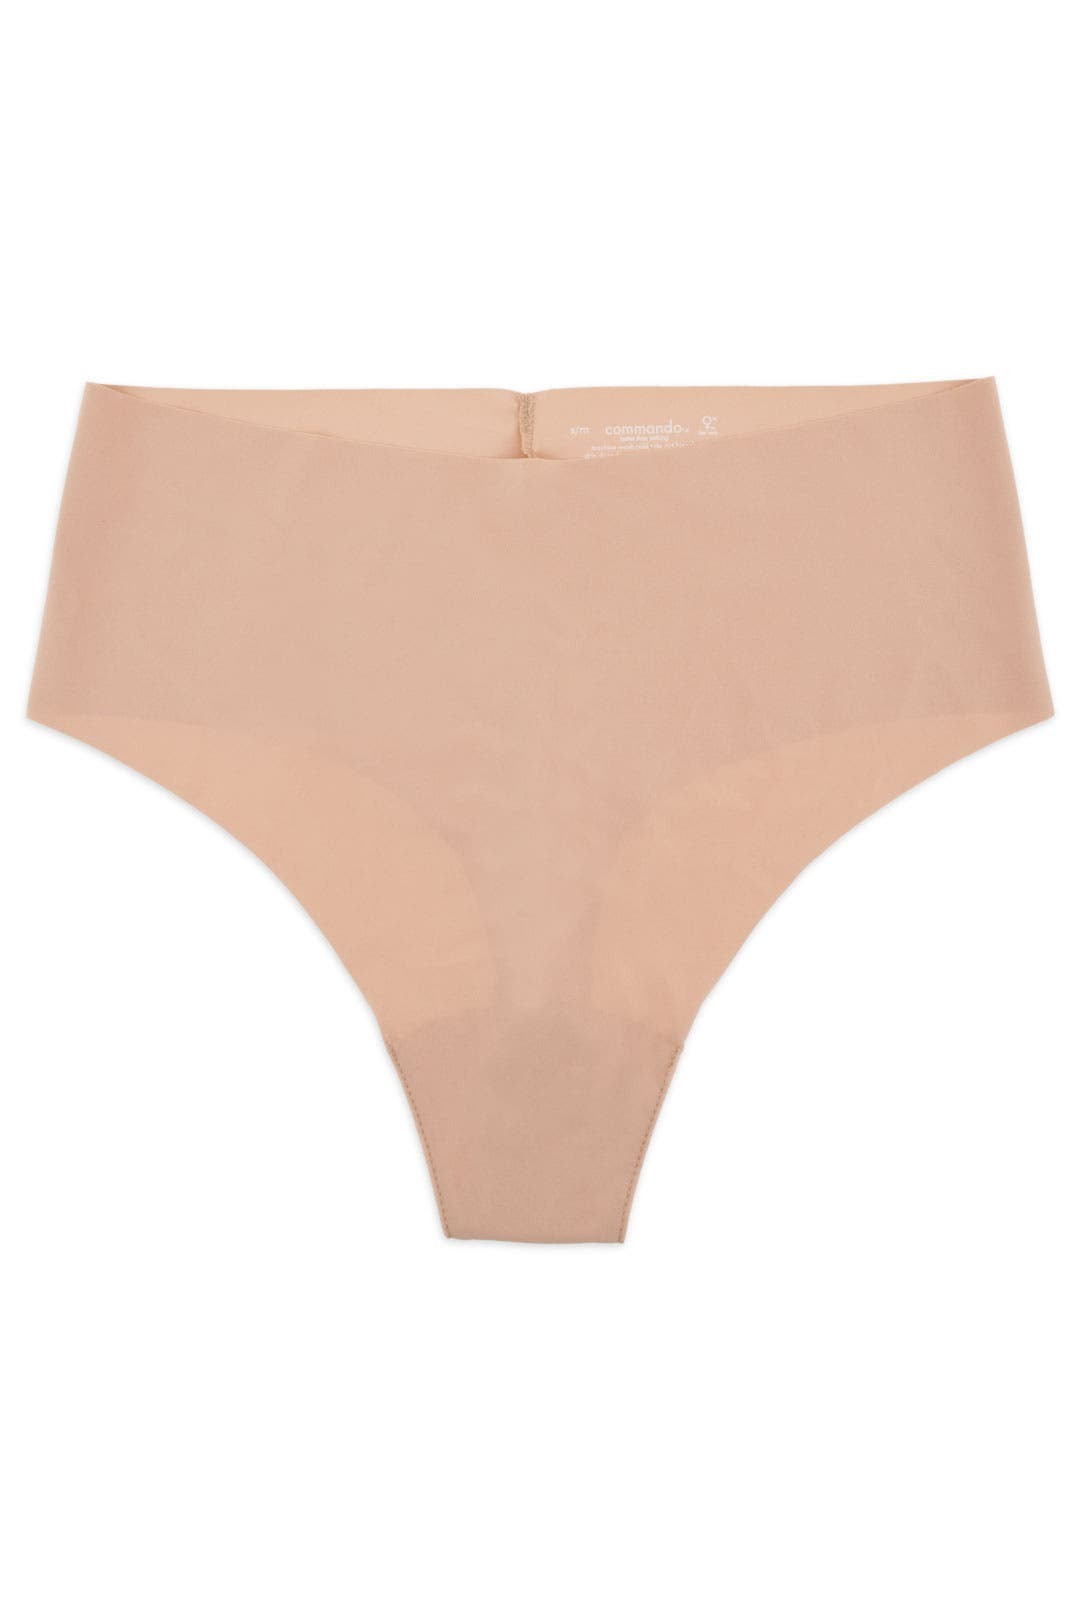 Seamless Nude High Rise Thong by Commando